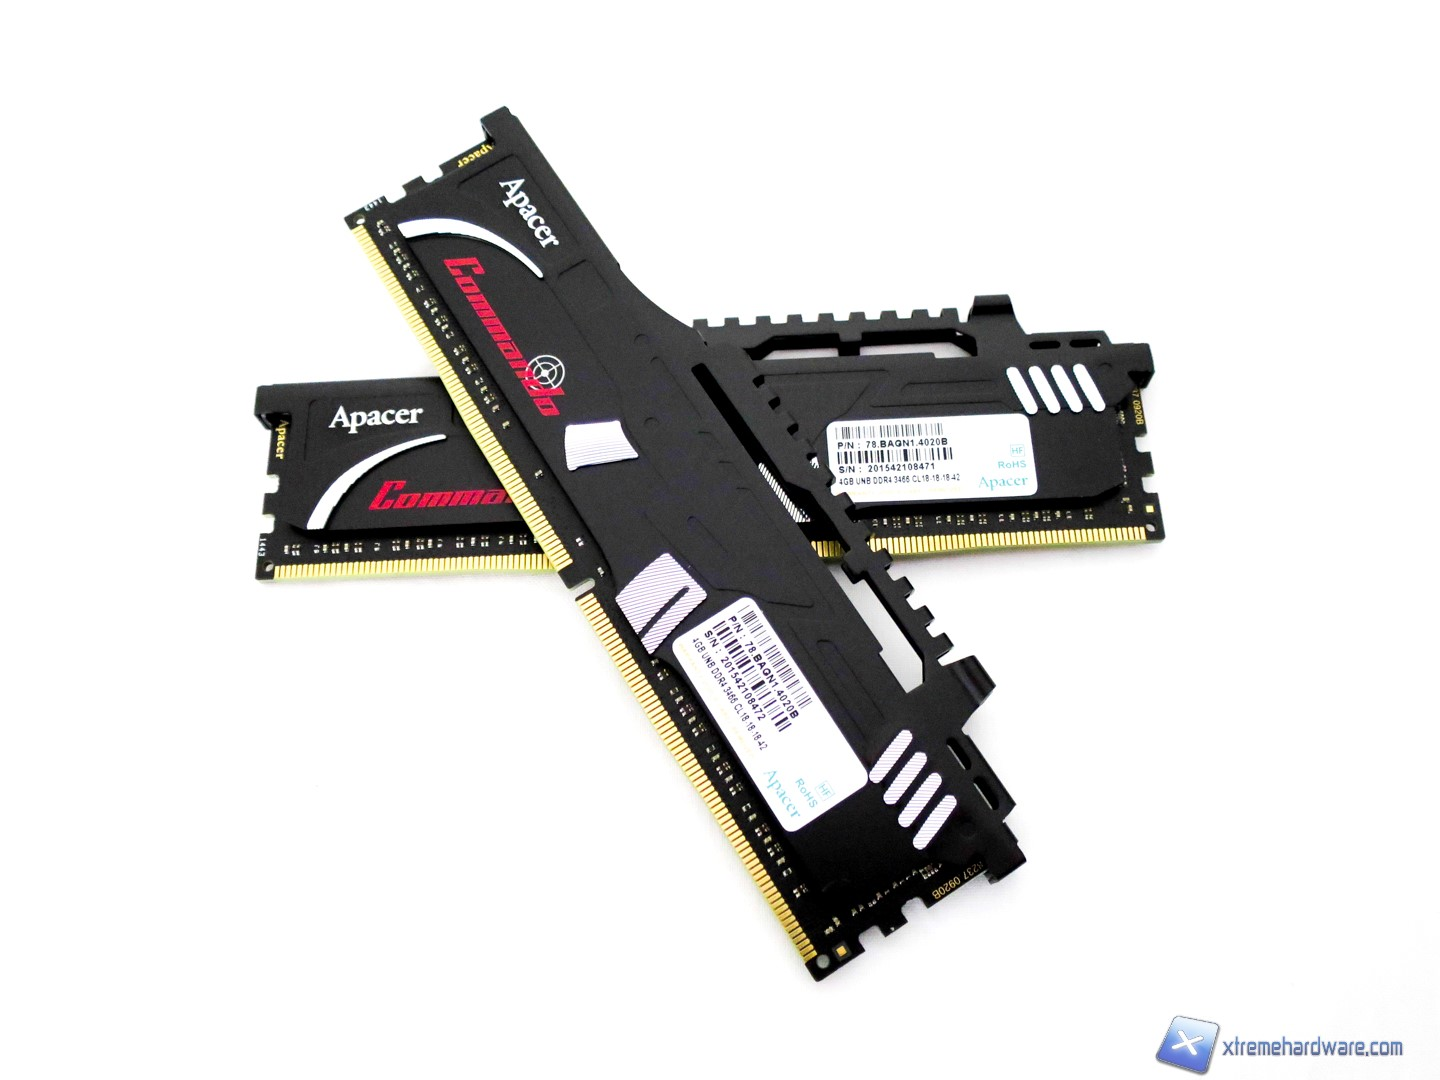 Apacer Commando DDR4 9